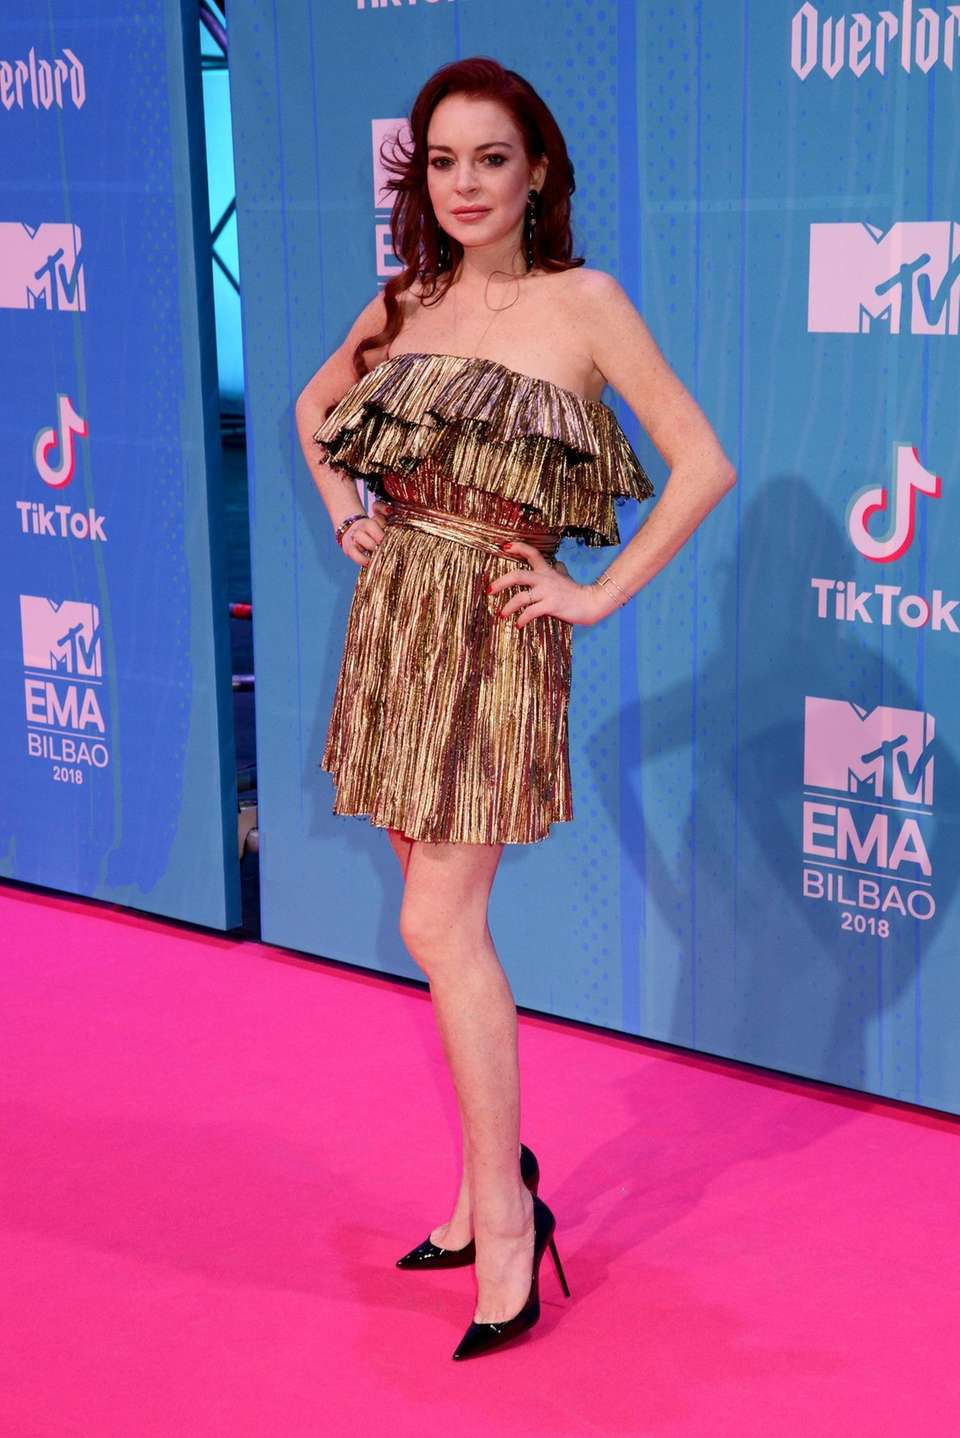 Lindsay Lohan attends the MTV EMAs at the